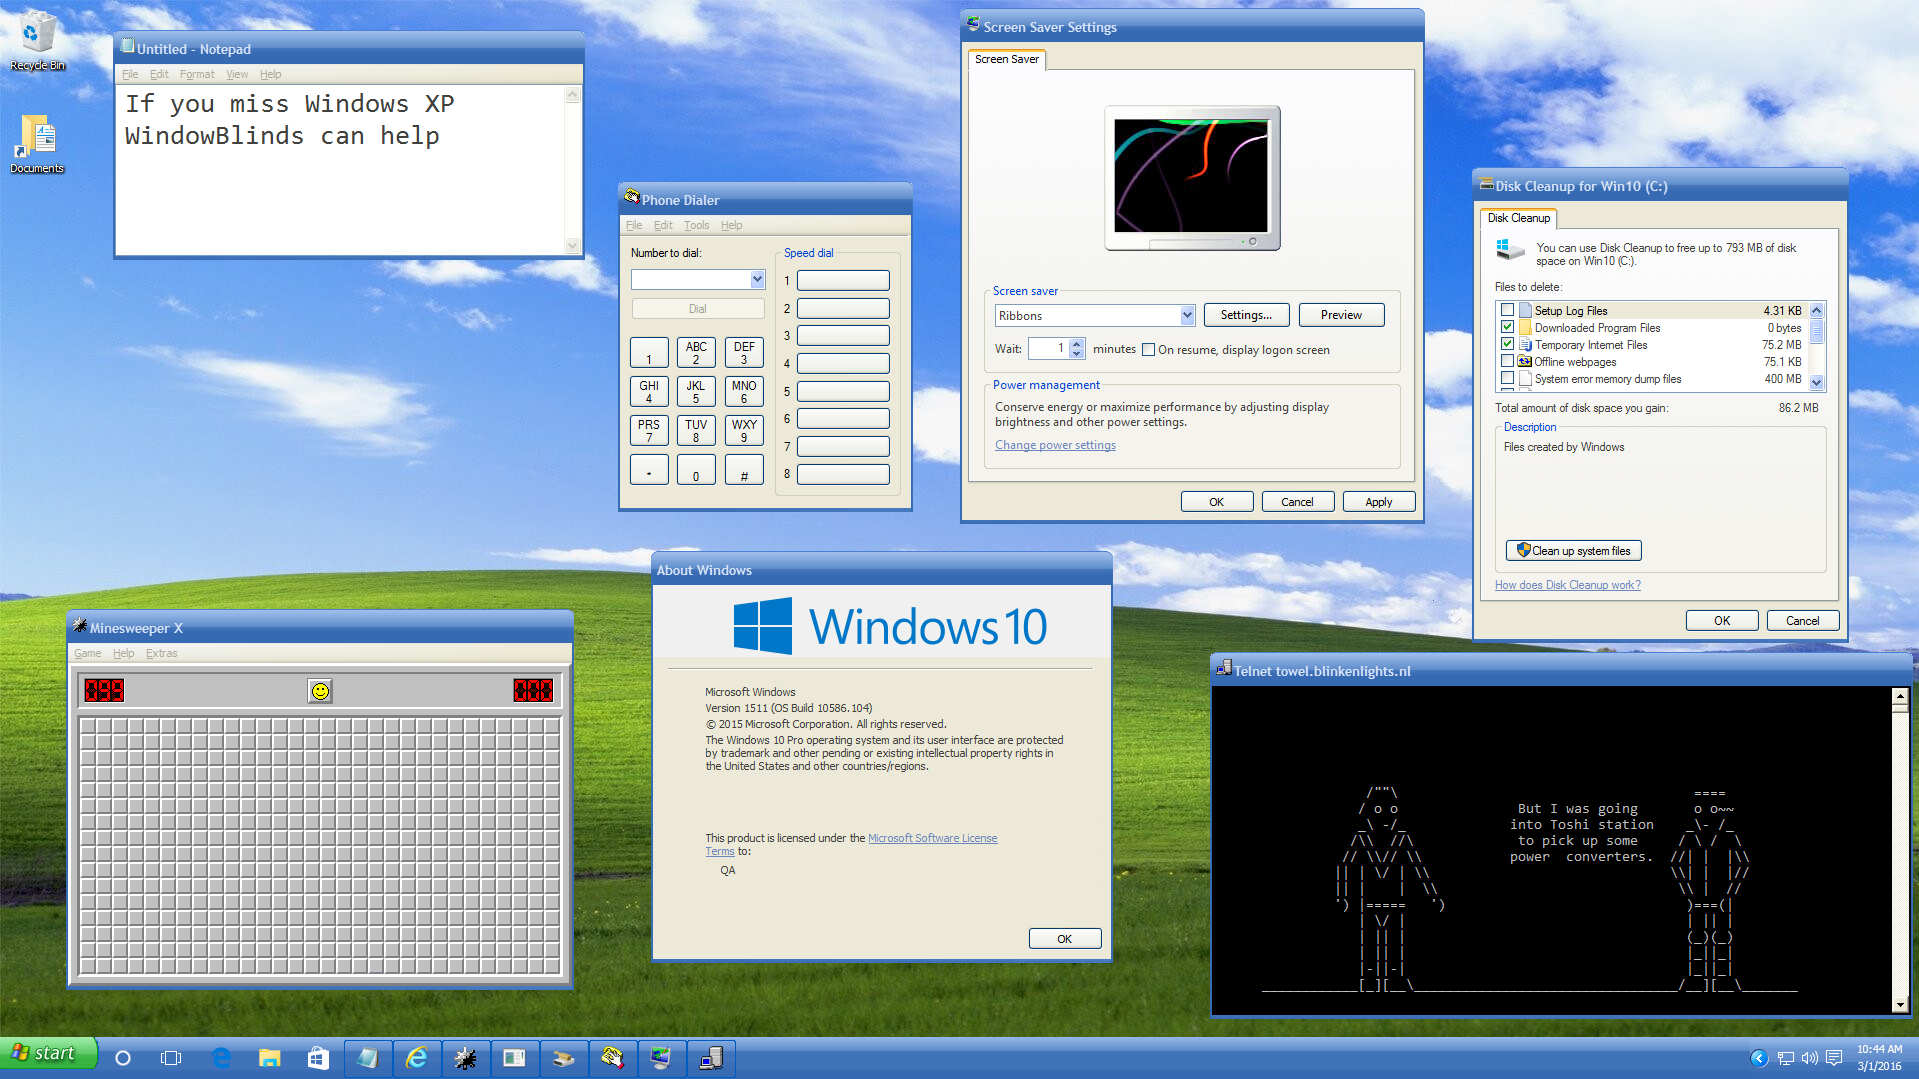 2006 Windows Xp Facelift By Choon Hian Relive The Good Old Days Of XP